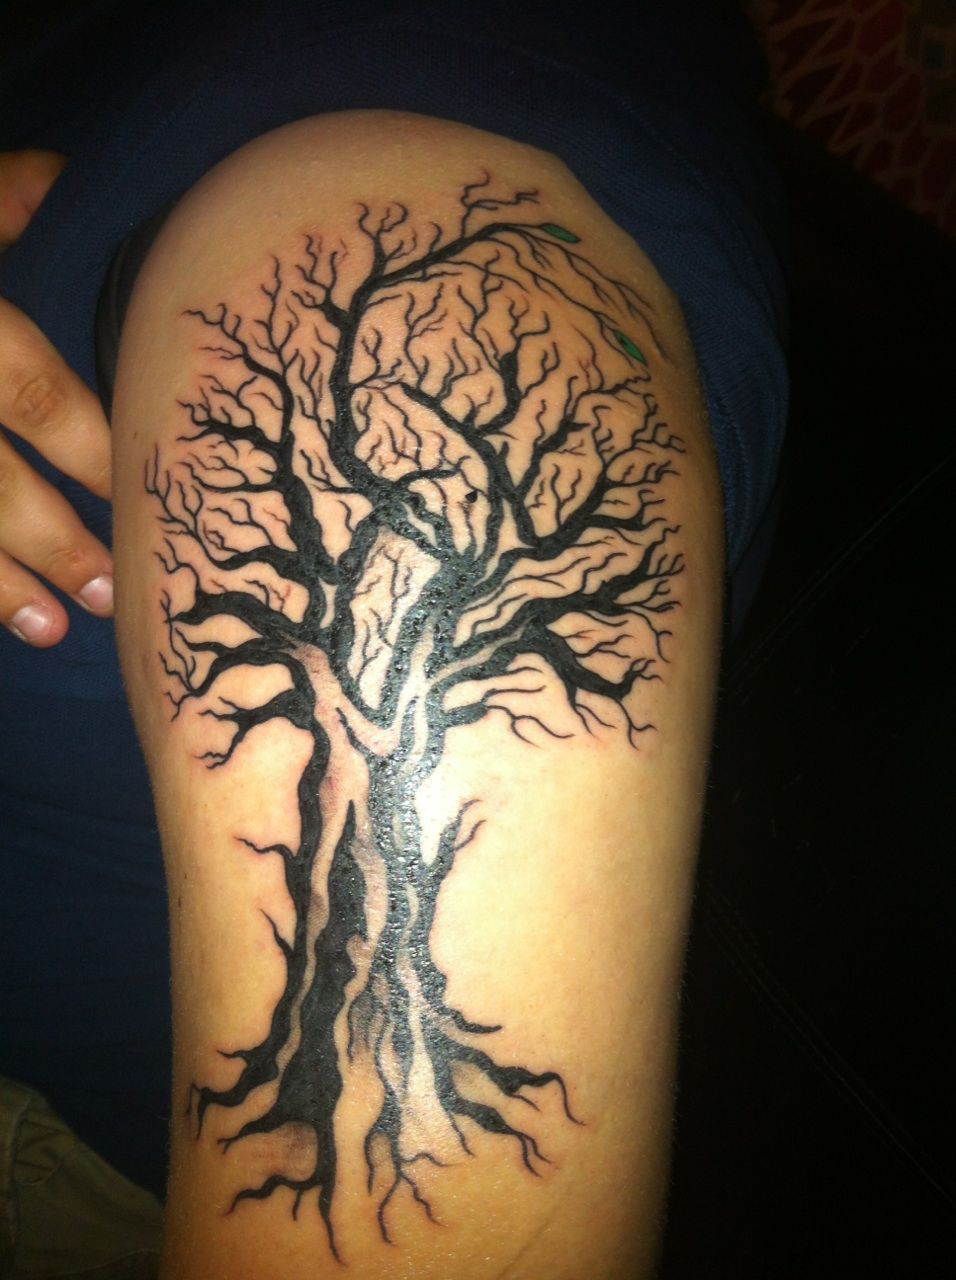 Oak Tree With Roots Tattoo: Tree Tattoo Meaning, Dead Tree Tattoo